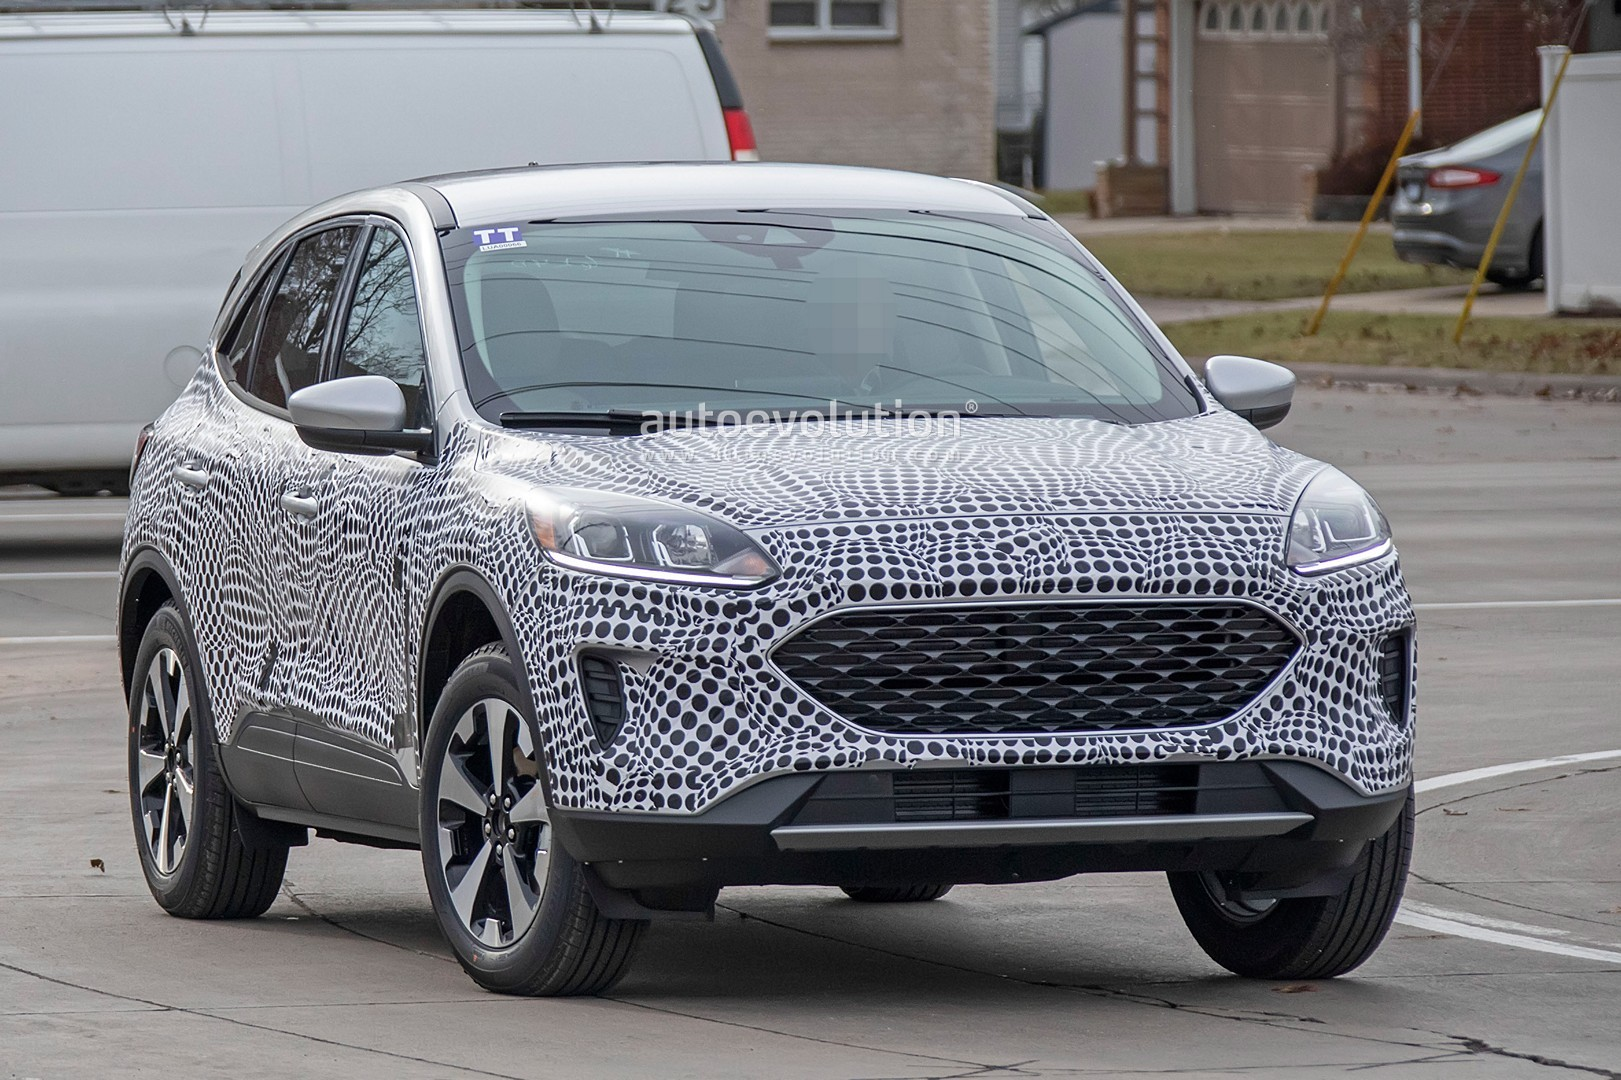 2020 Ford Escape / Kuga Spied With Production Body, Is a Like Jaguar-Focus Combo - autoevolution